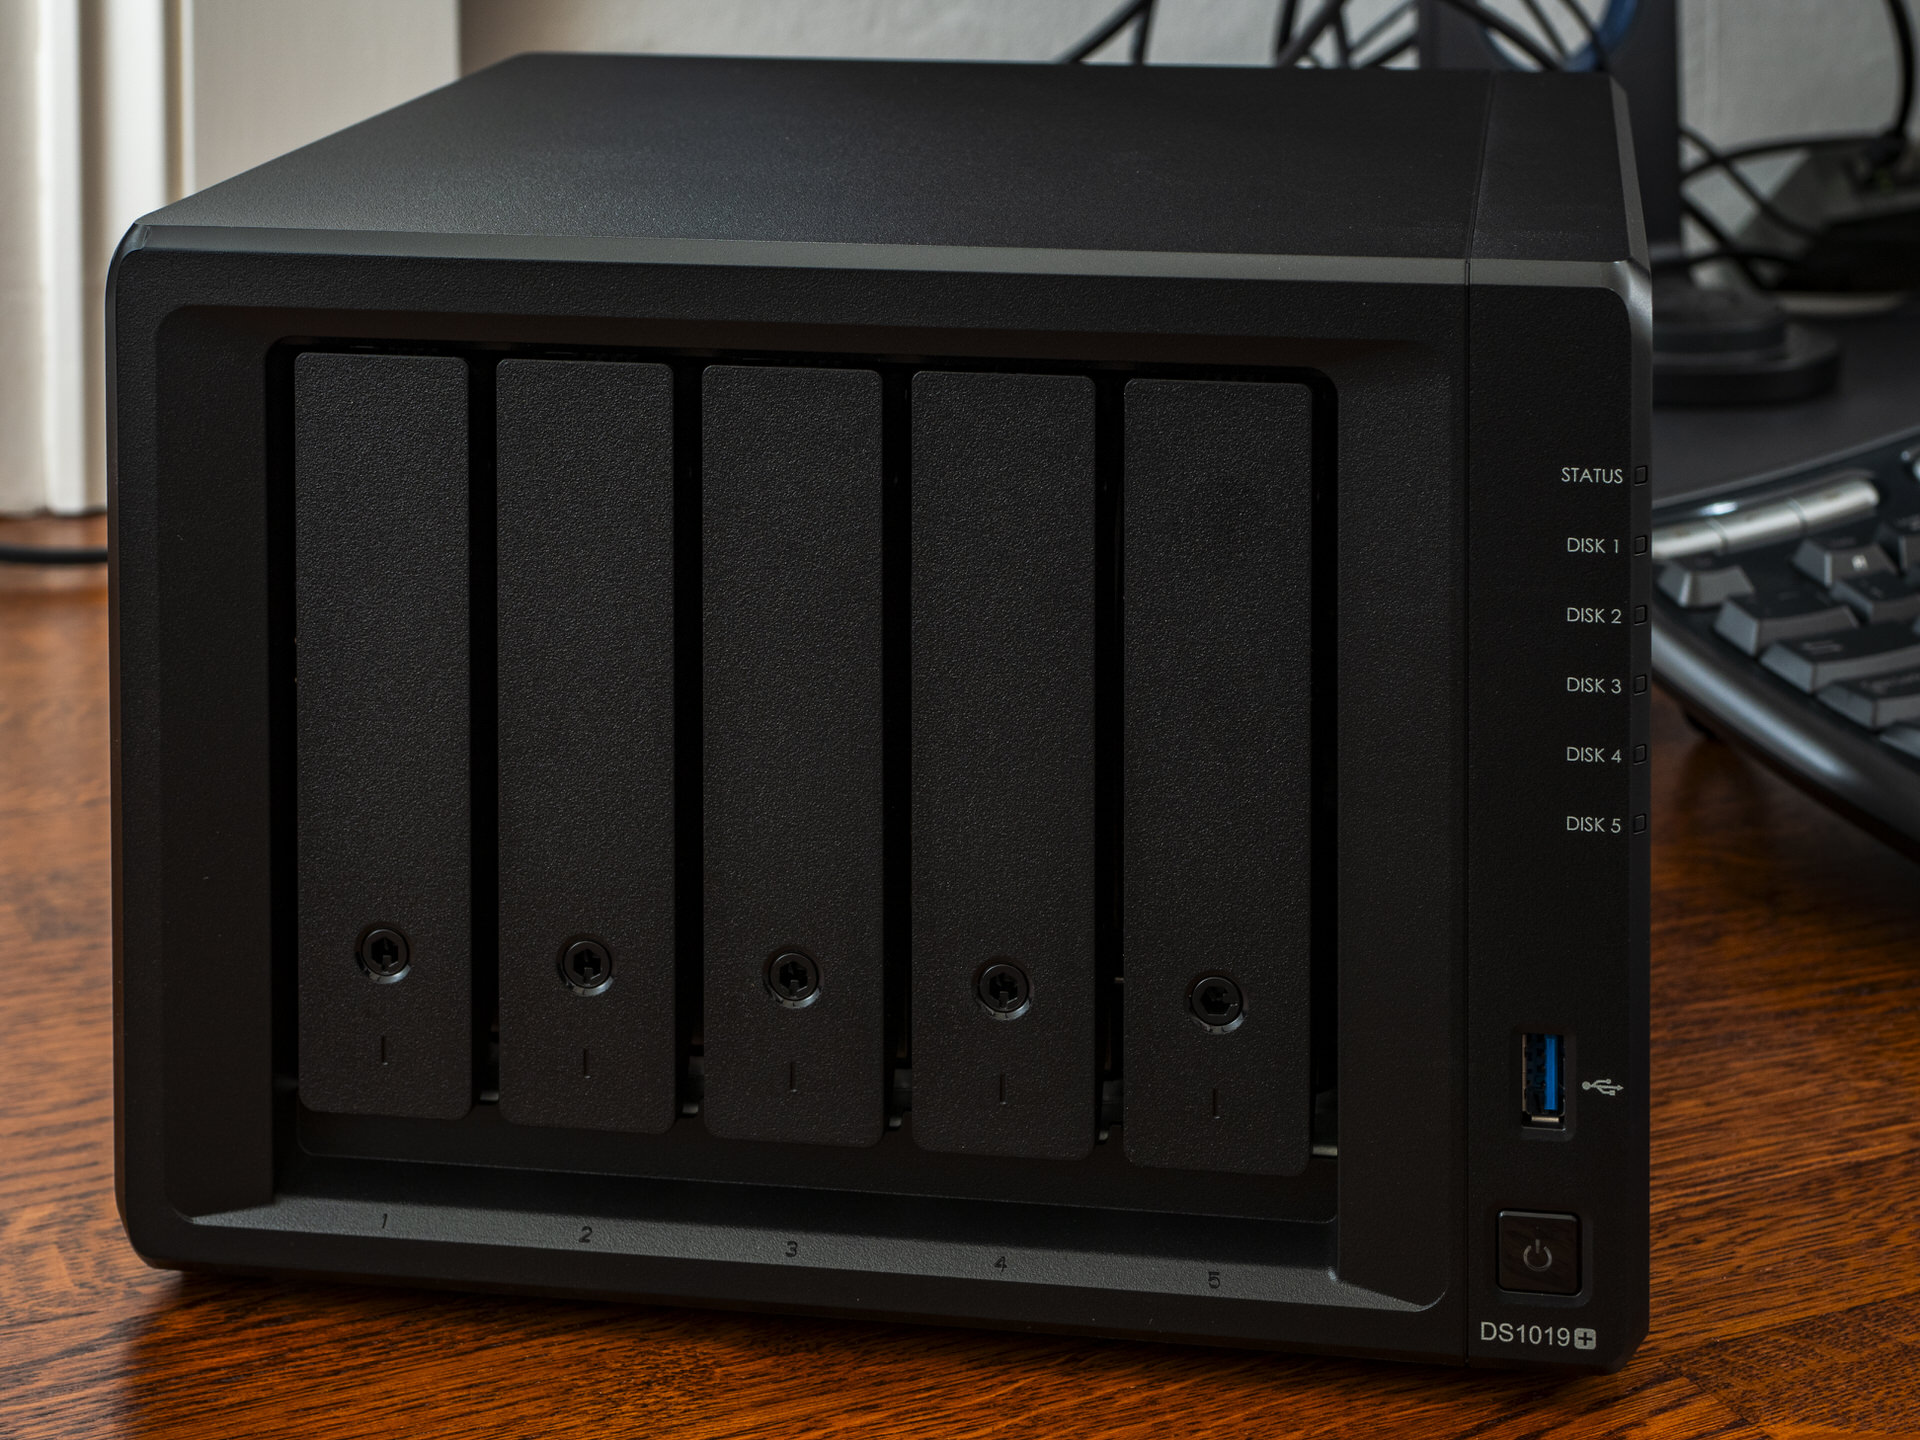 Hands on: Synology DS1019+ is a five-drive NAS storage solution for